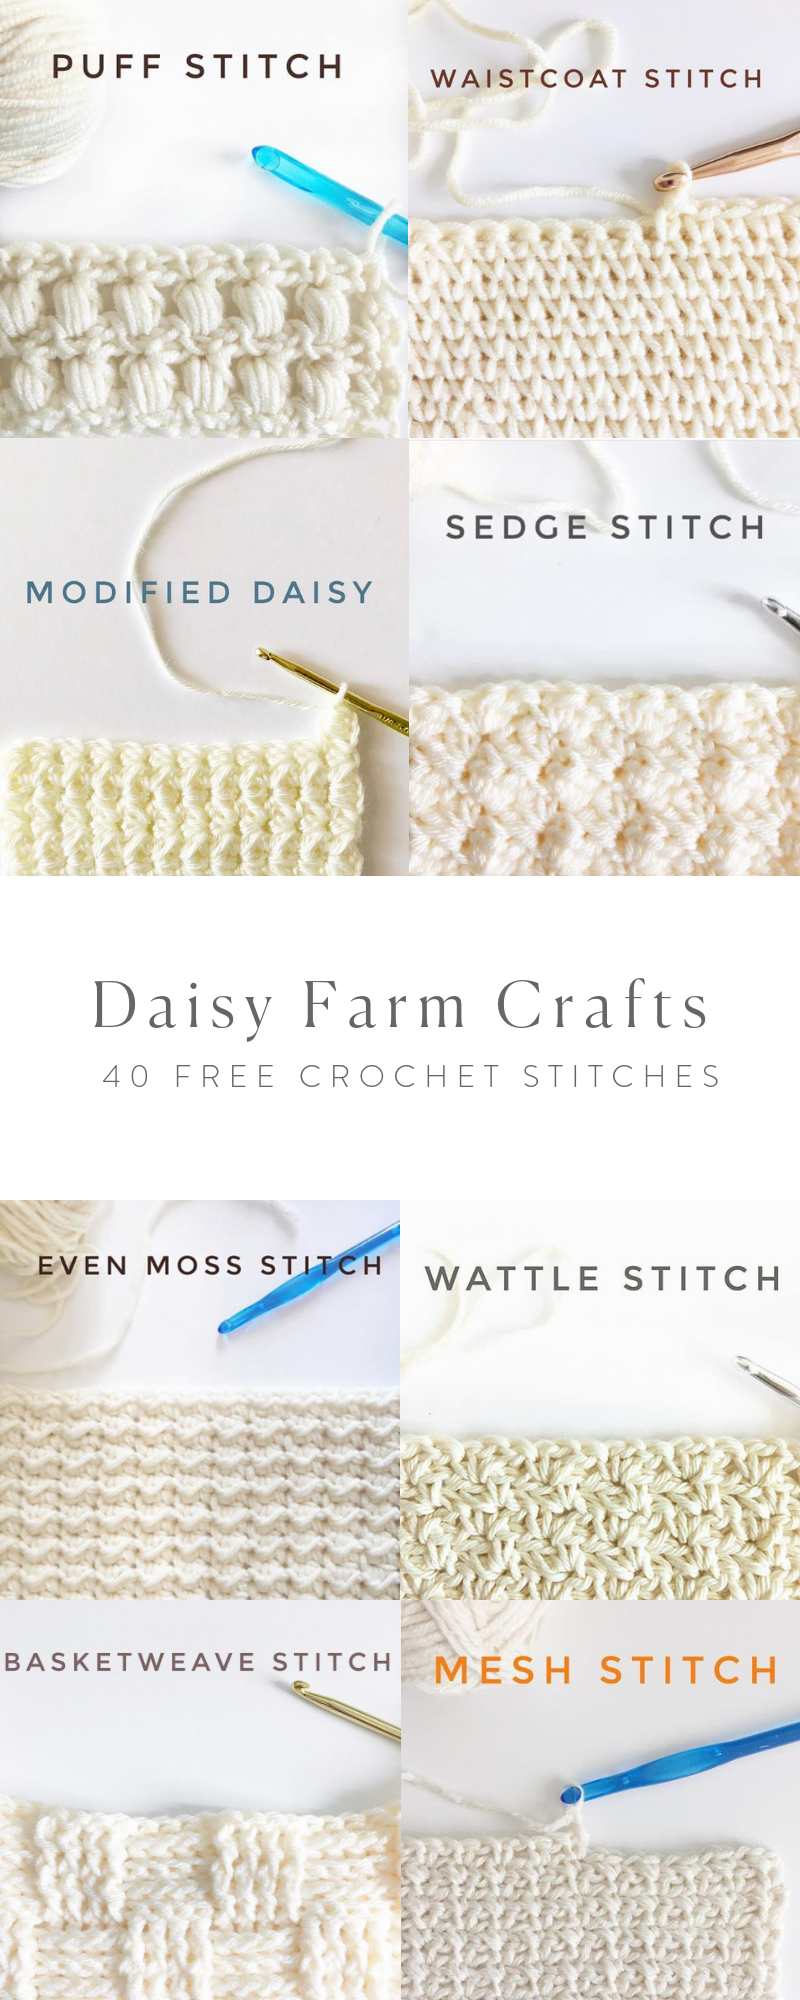 Gratis Stitchery Patronen.40 Free Crochet Stitches From Daisy Farm Crafts Haaksteken